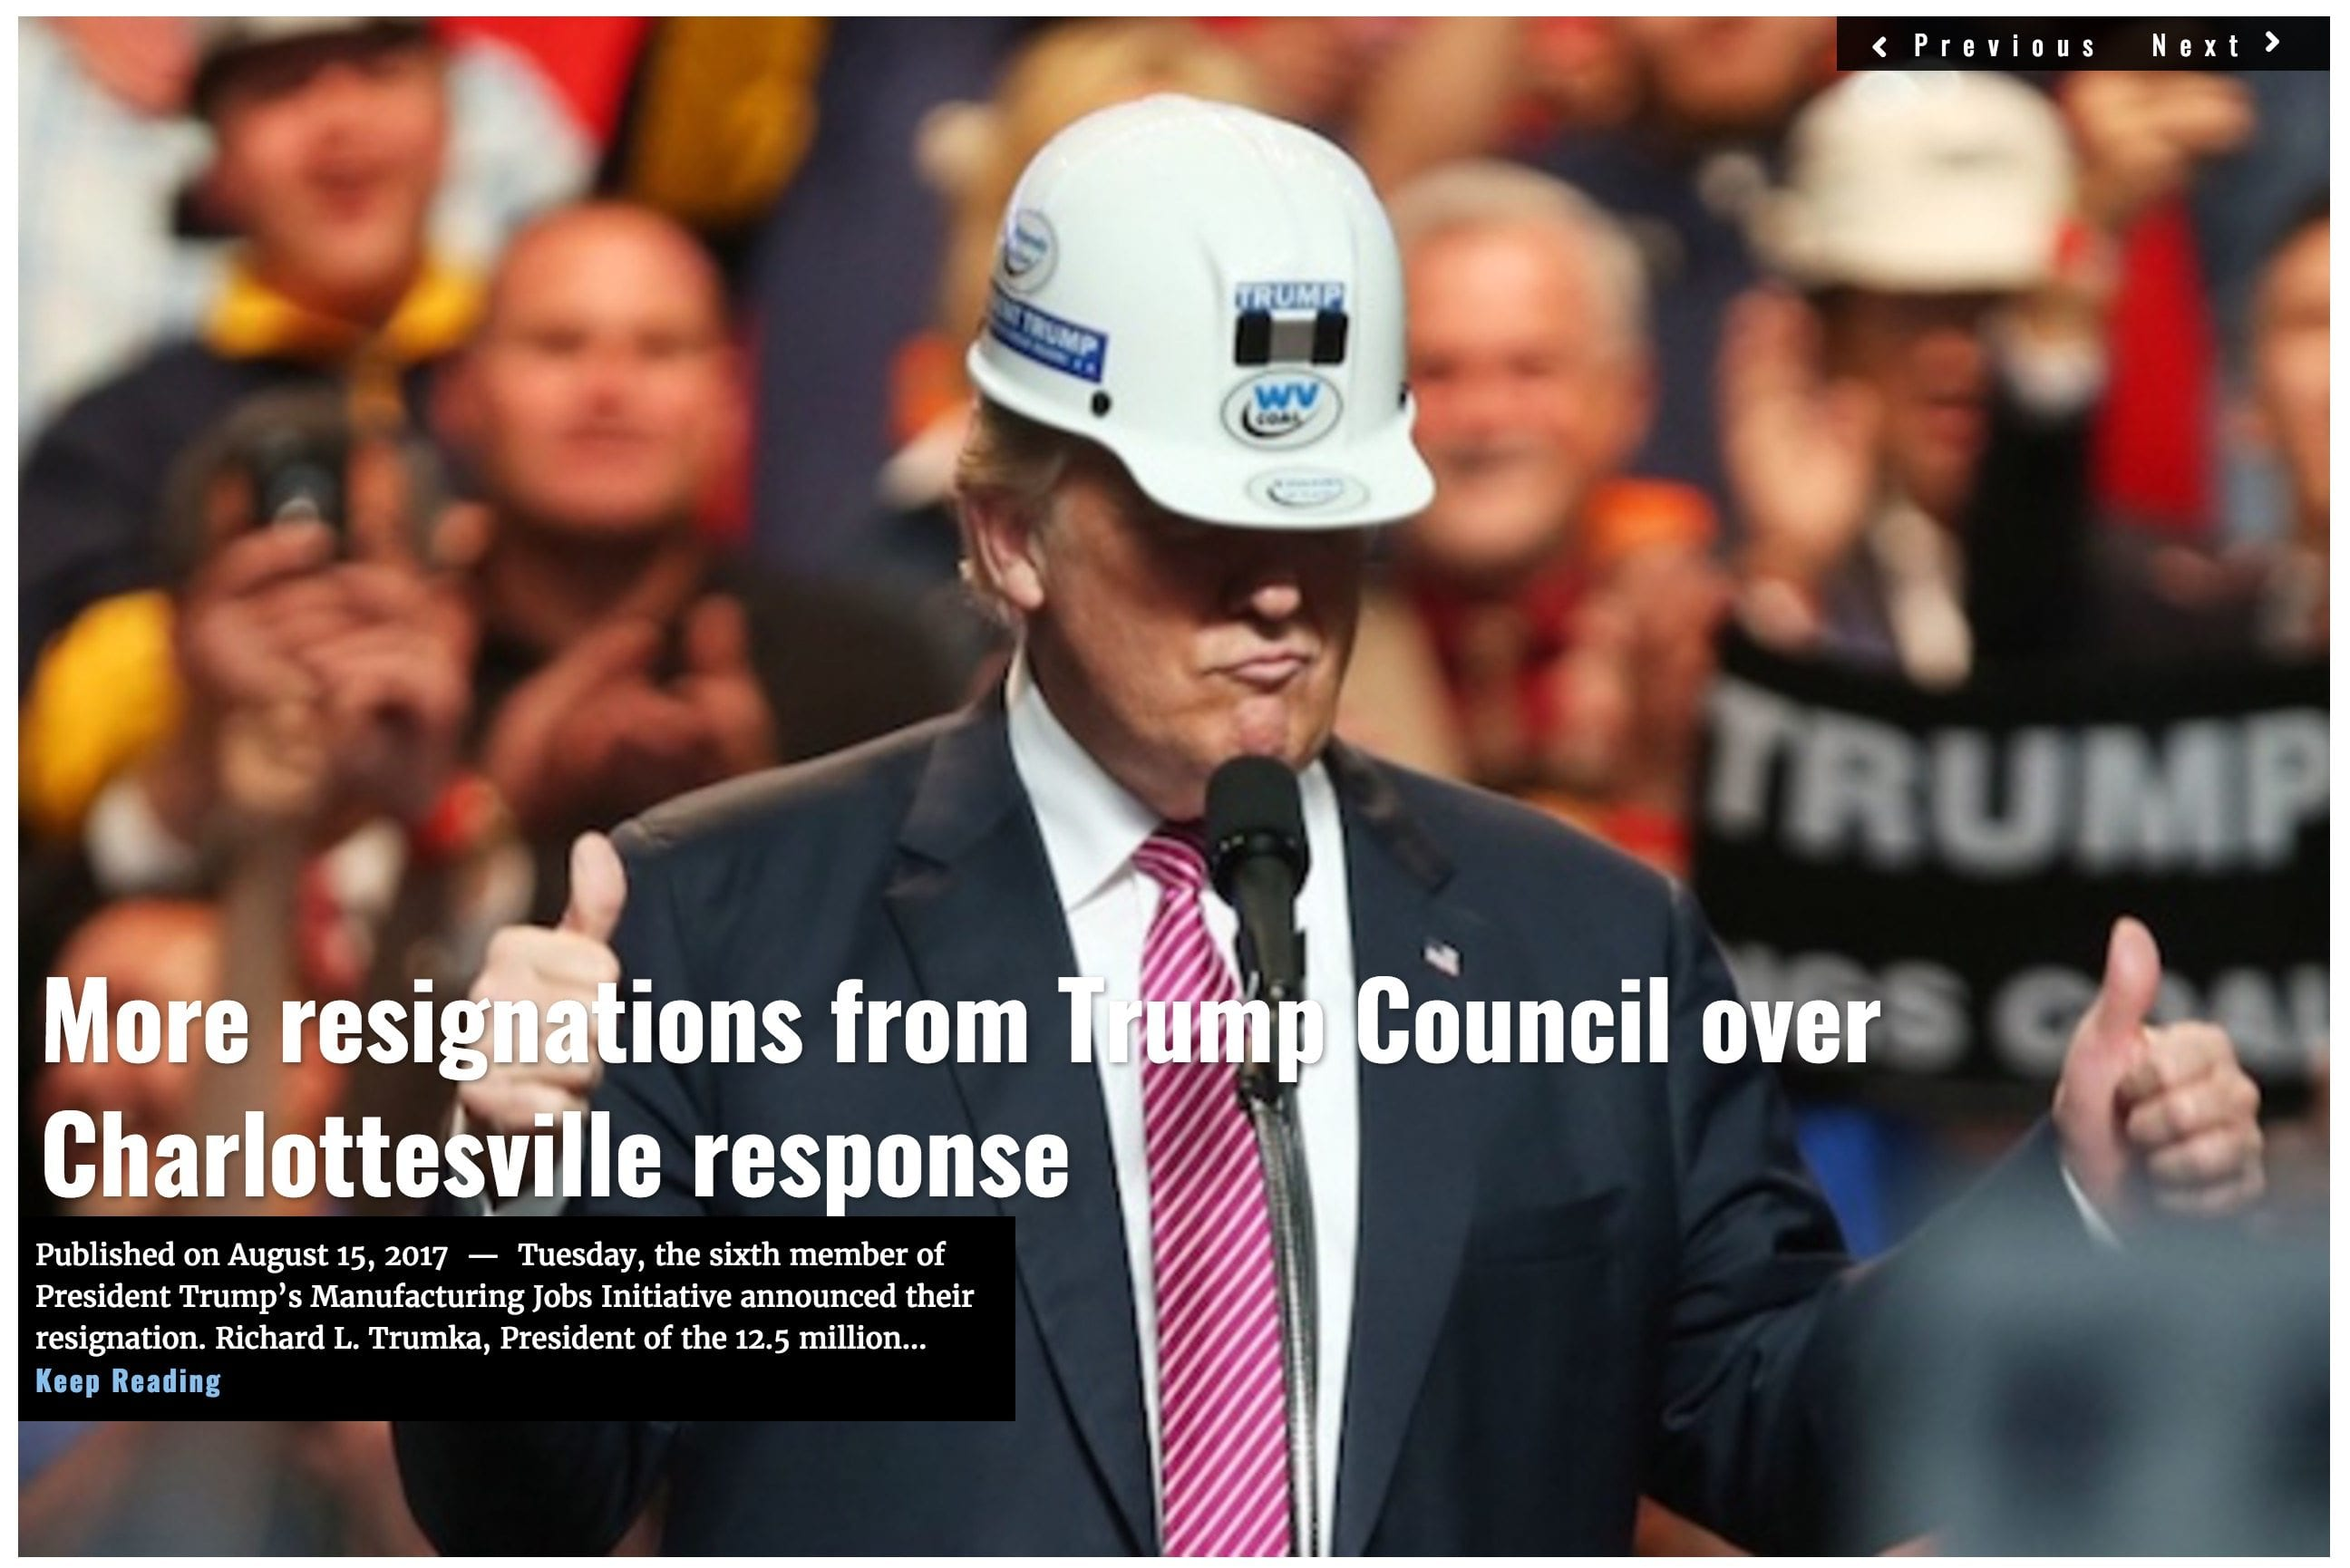 Image Lima Charlie News headline Trump Council resignations